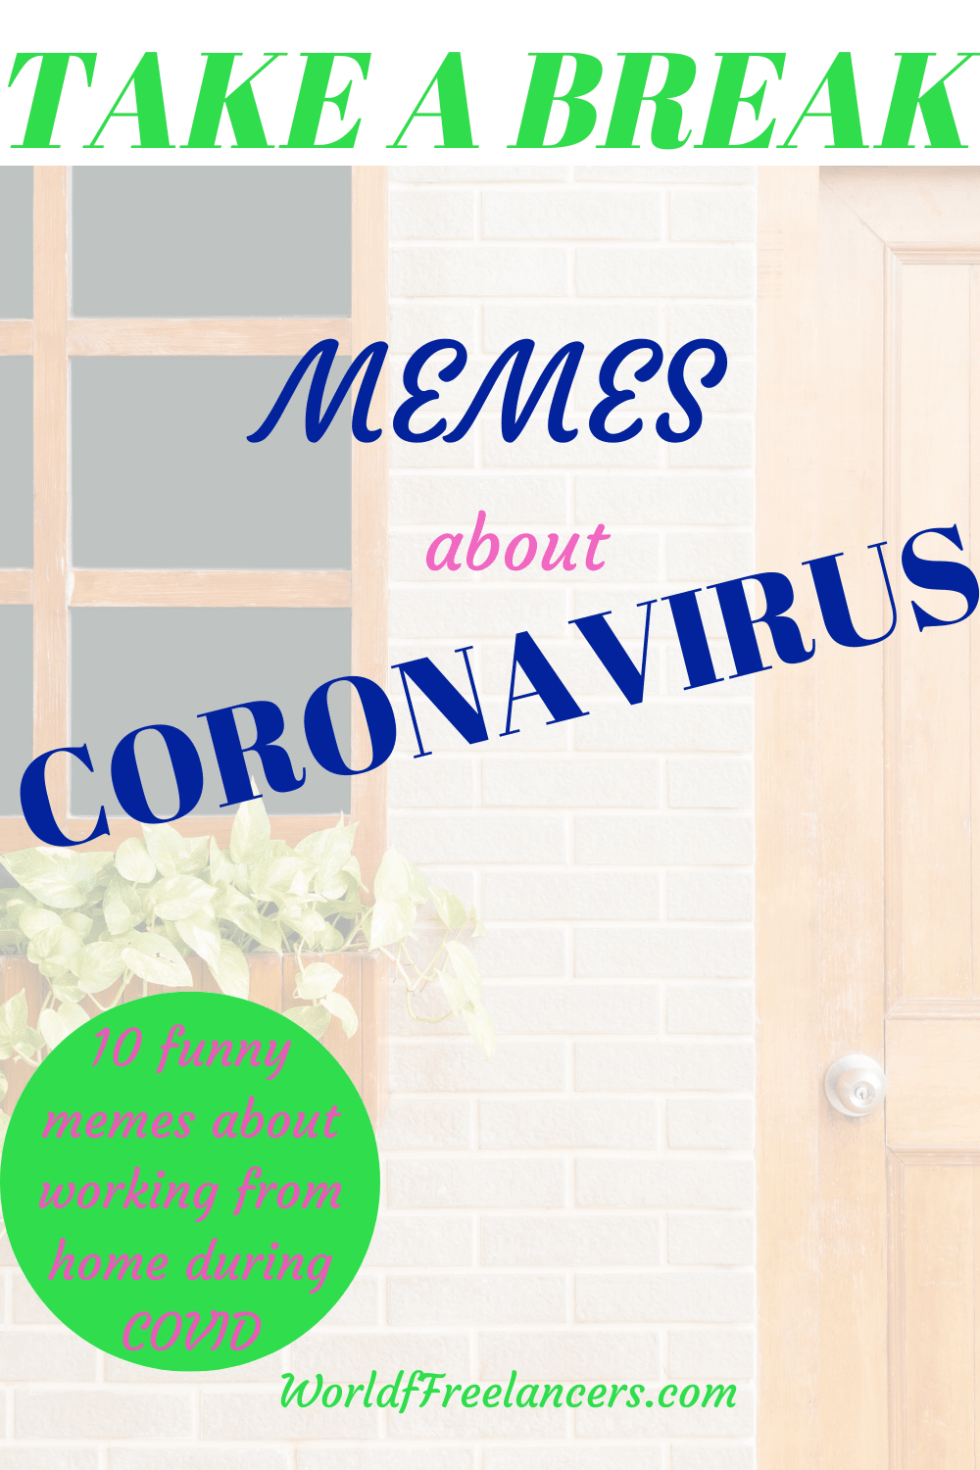 Take a break with these 10 memes about coronavirus